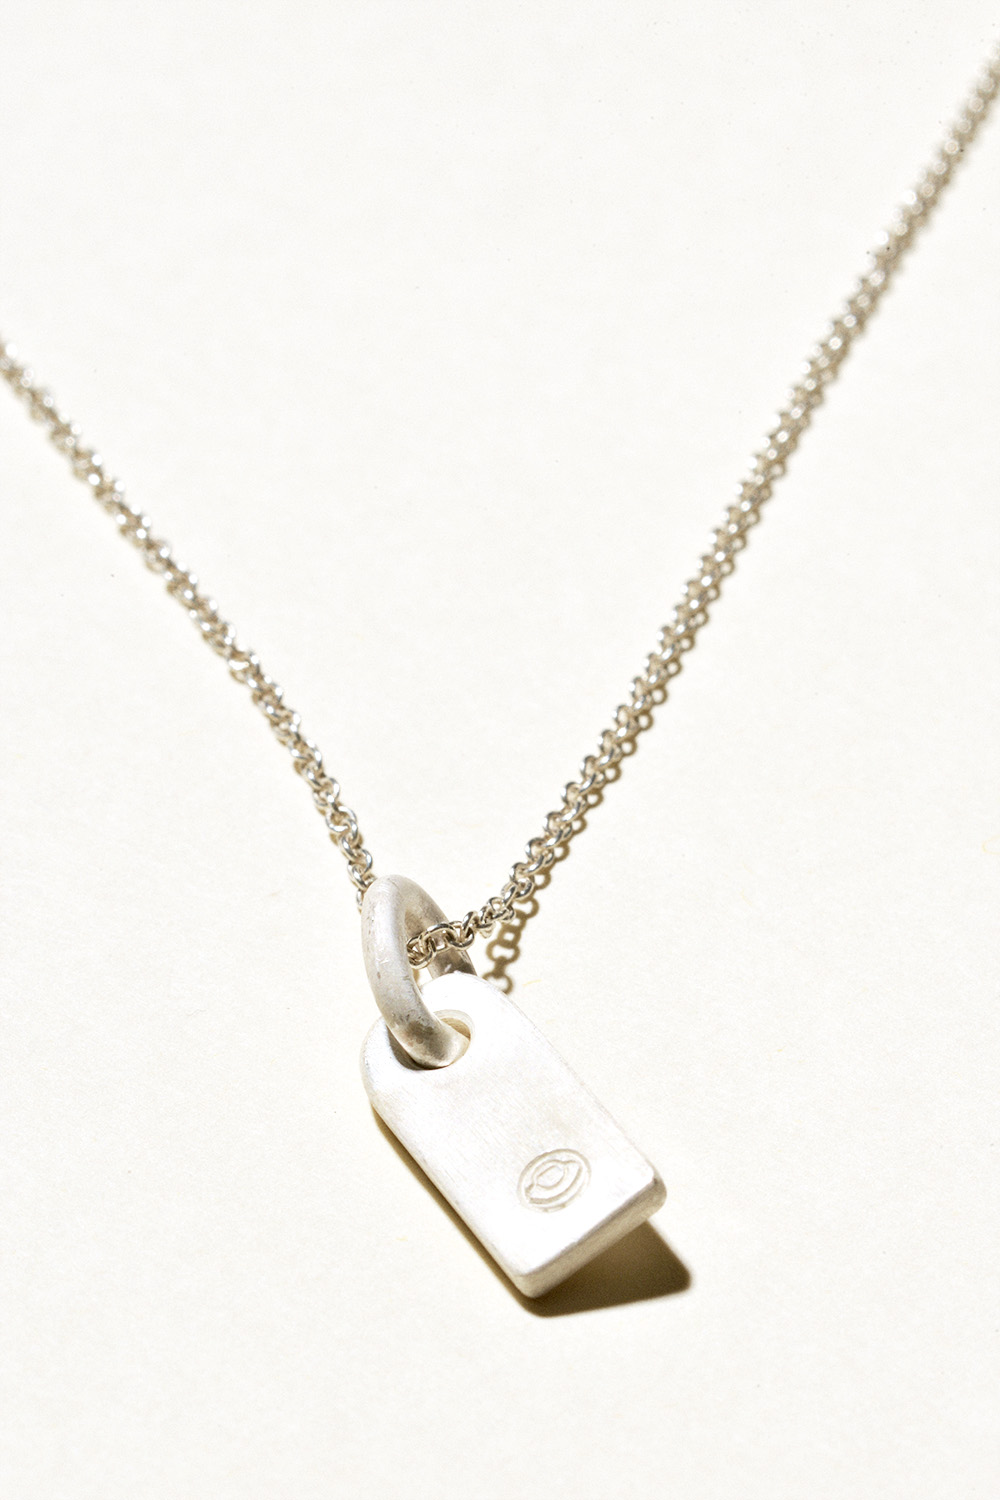 Tag Necklace - 25mm x 8mm on an 18in chainSterling Silver, Raw FinishHand Smithed $100